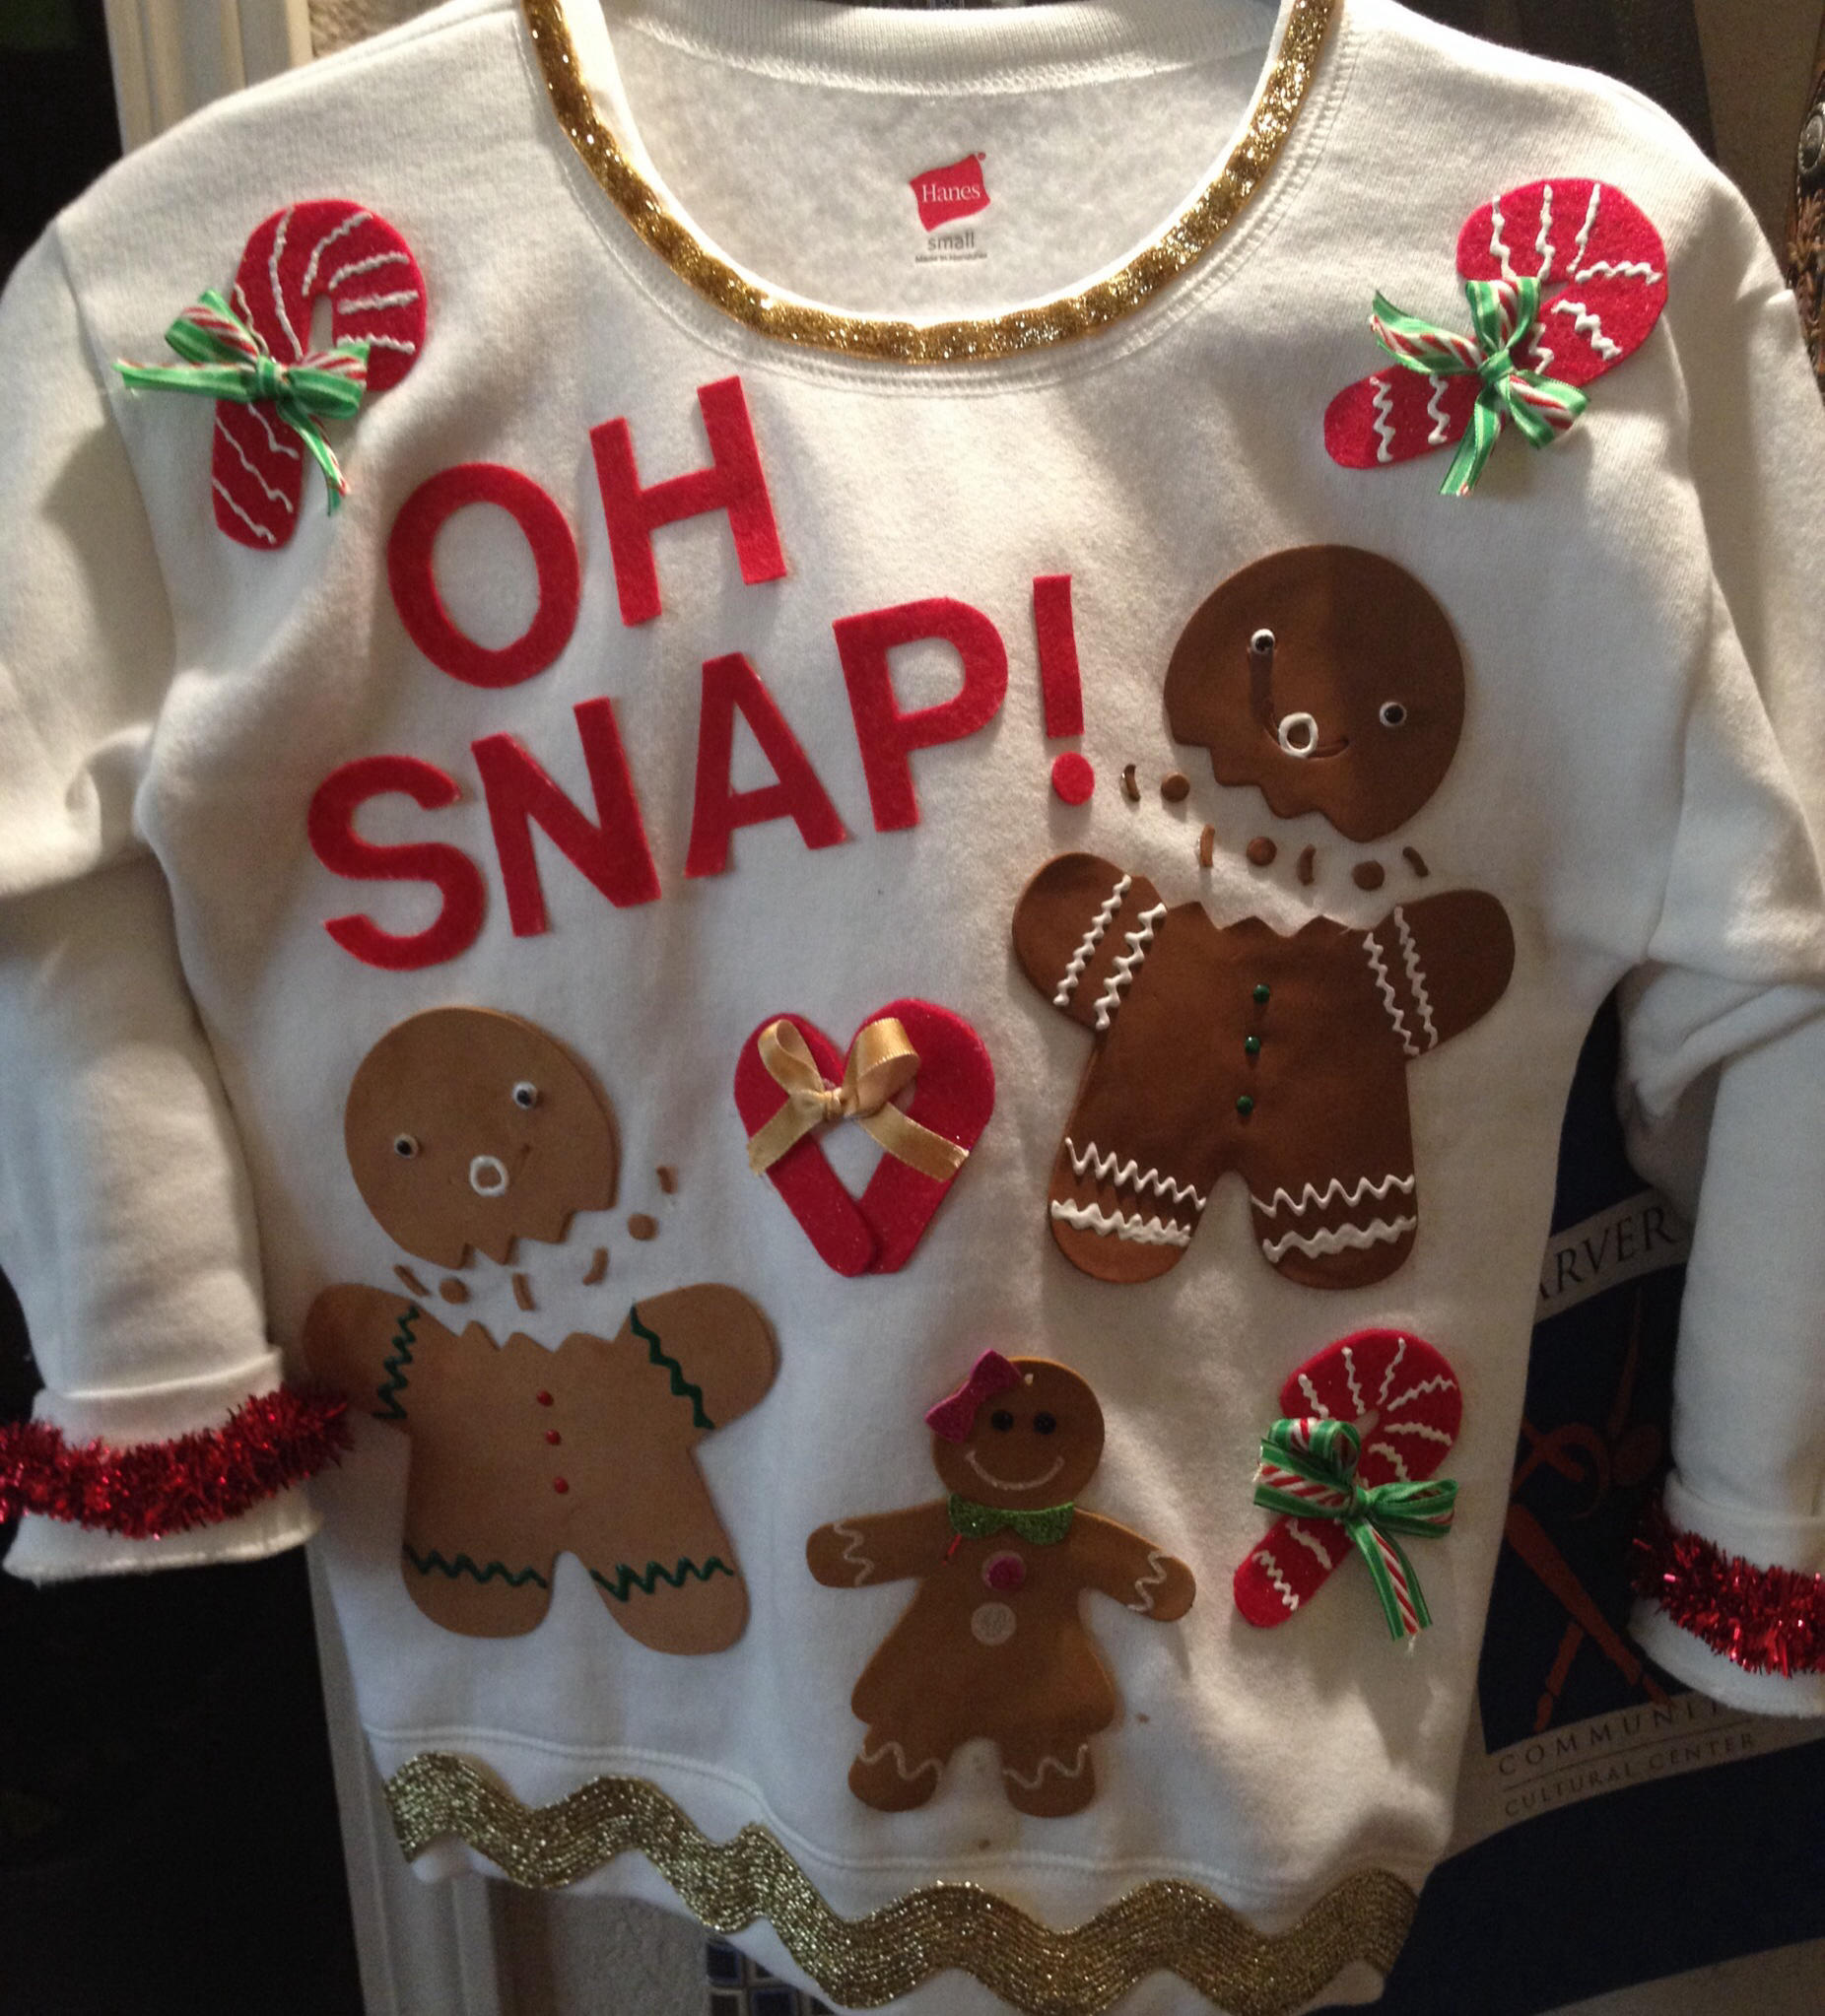 Making your own ugly christmas sweaters